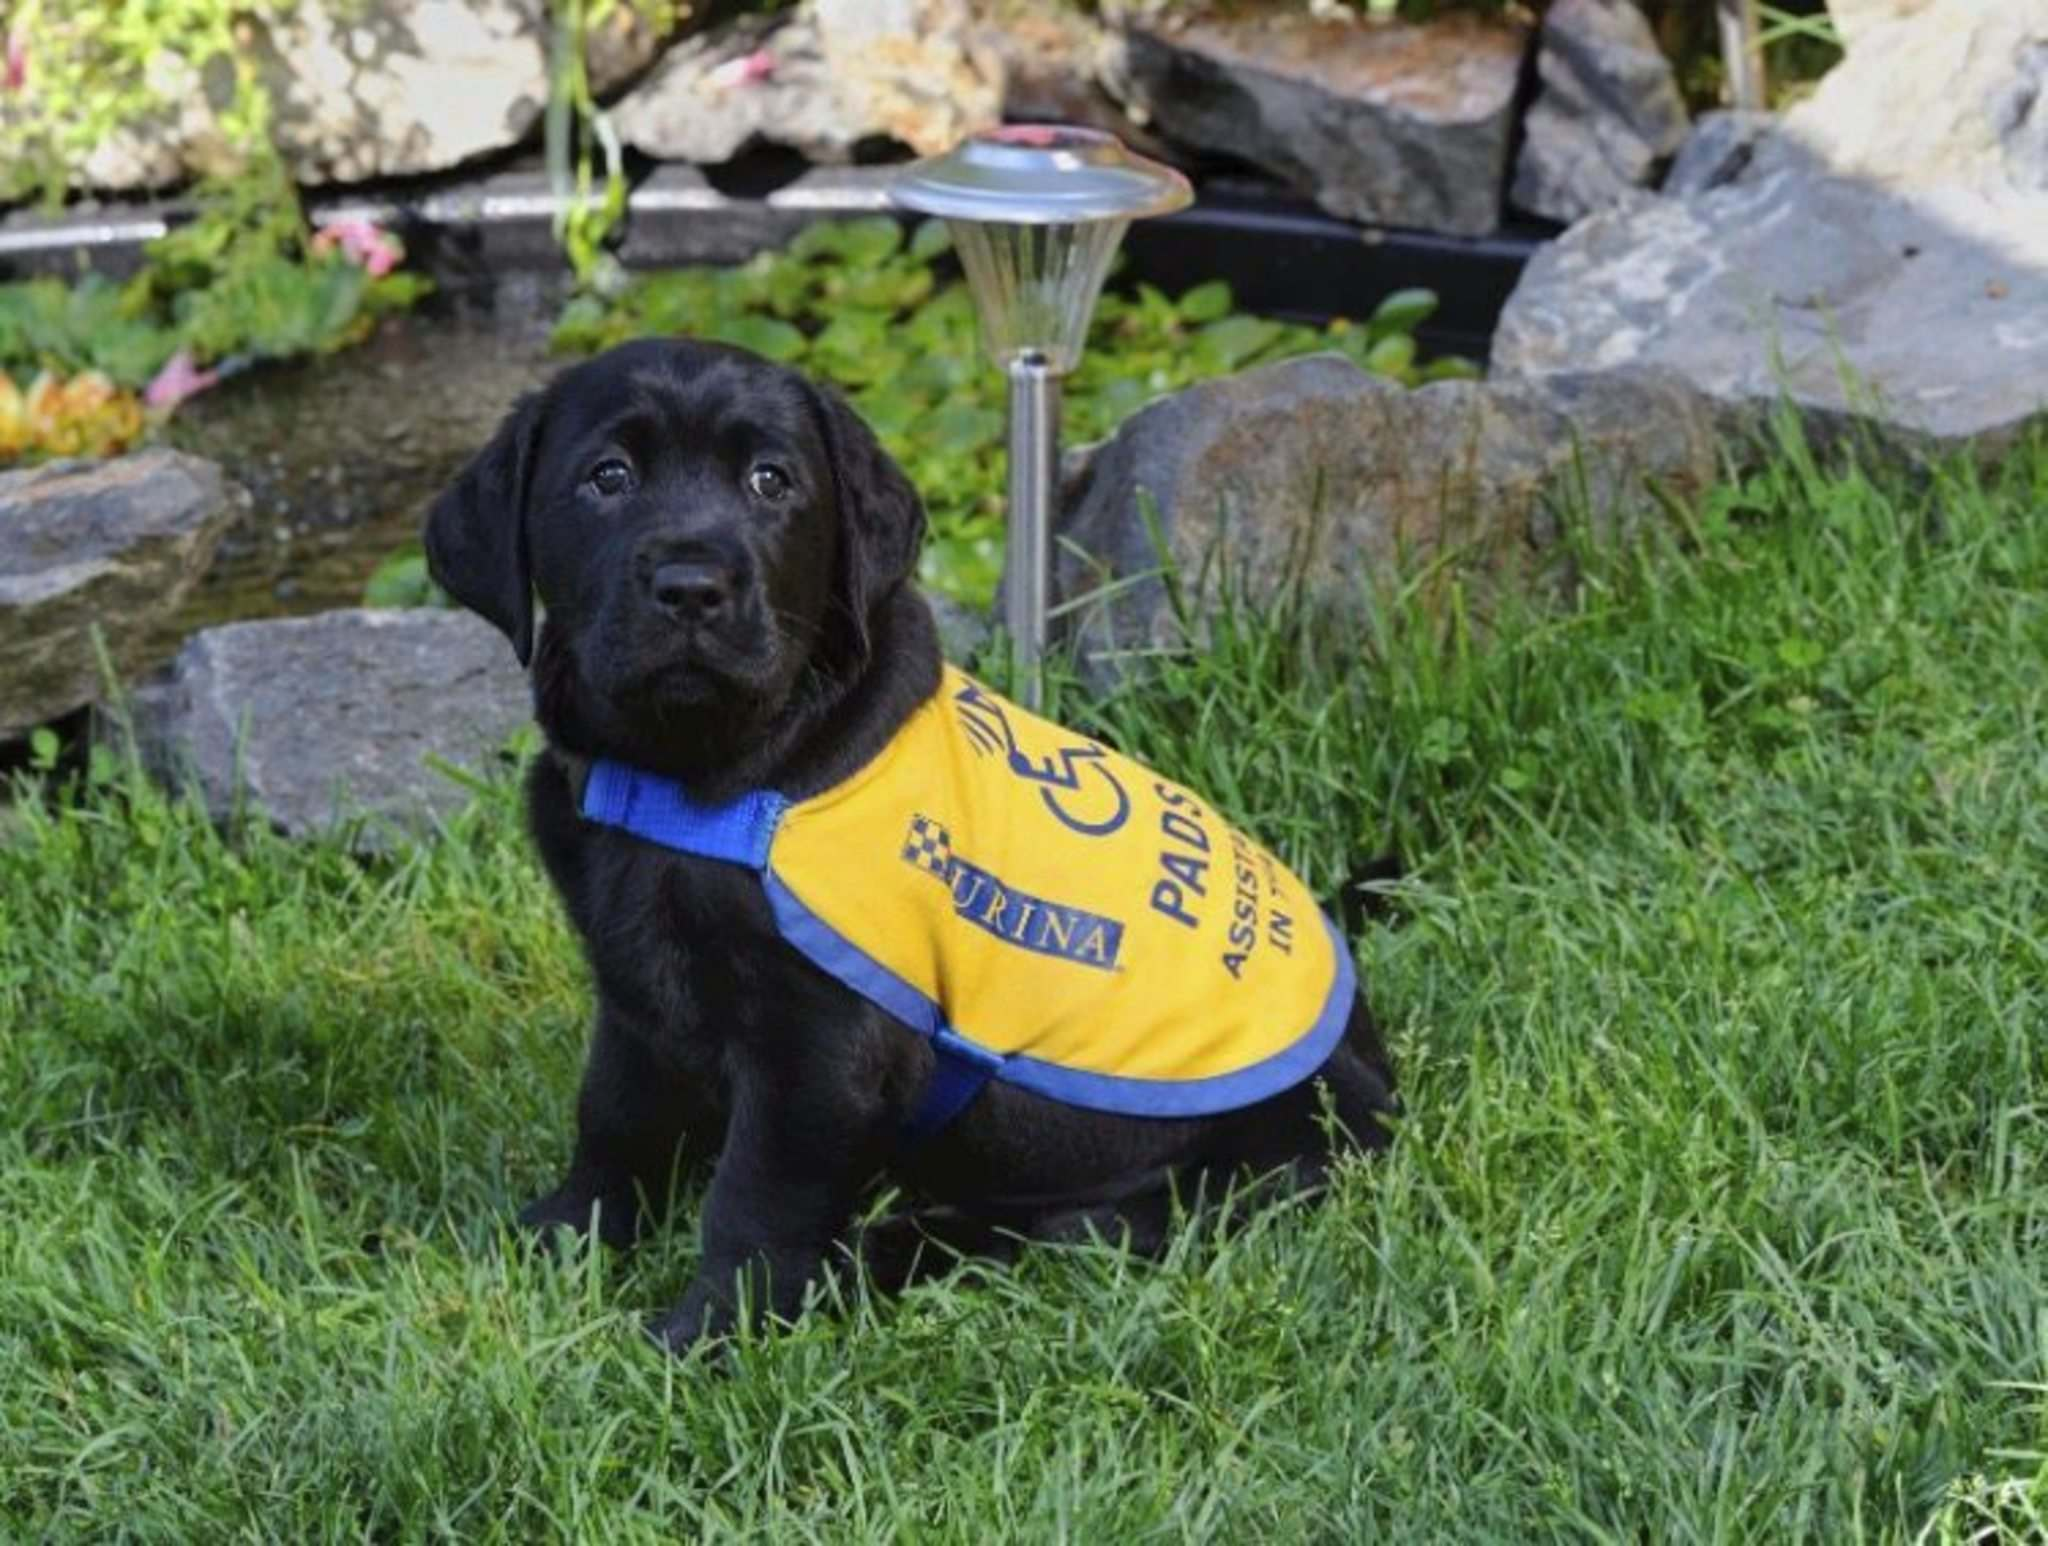 At eight weeks old, Milan went to live with raisers, who help socialize the dogs for their future work. (Supplied photo)